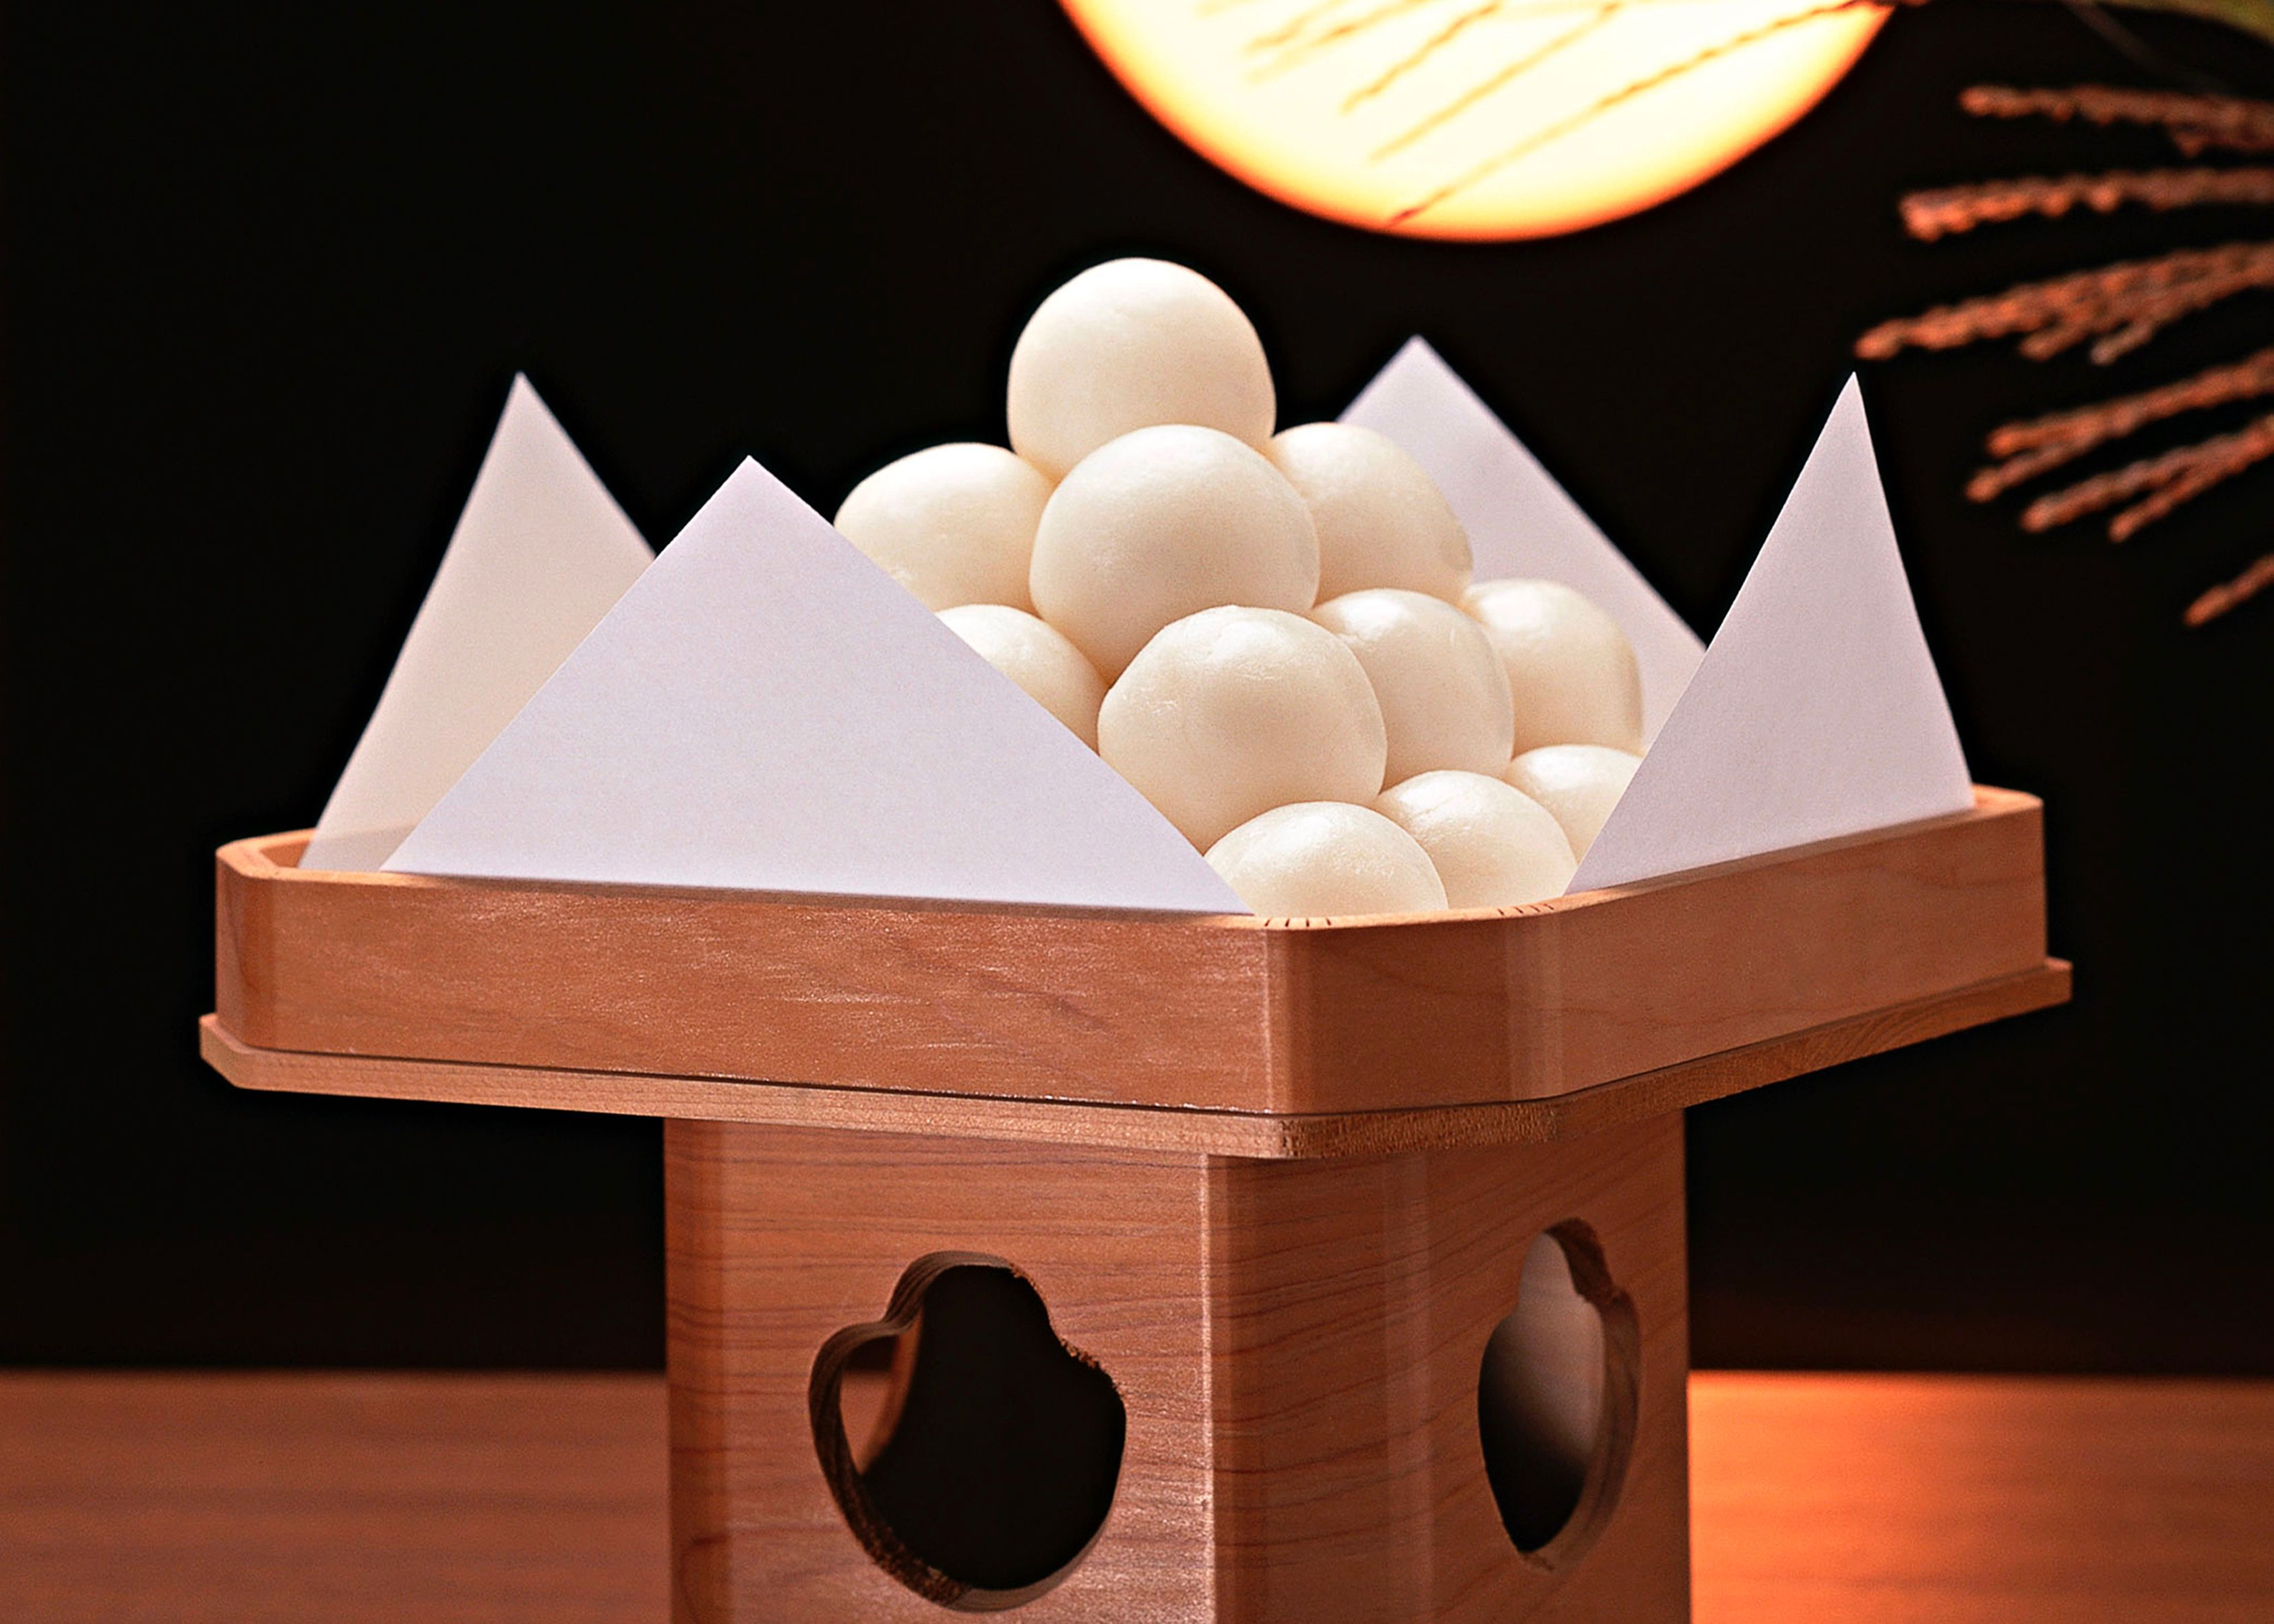 Japanese Autumn Harvest Moon Festival Food and Traditions